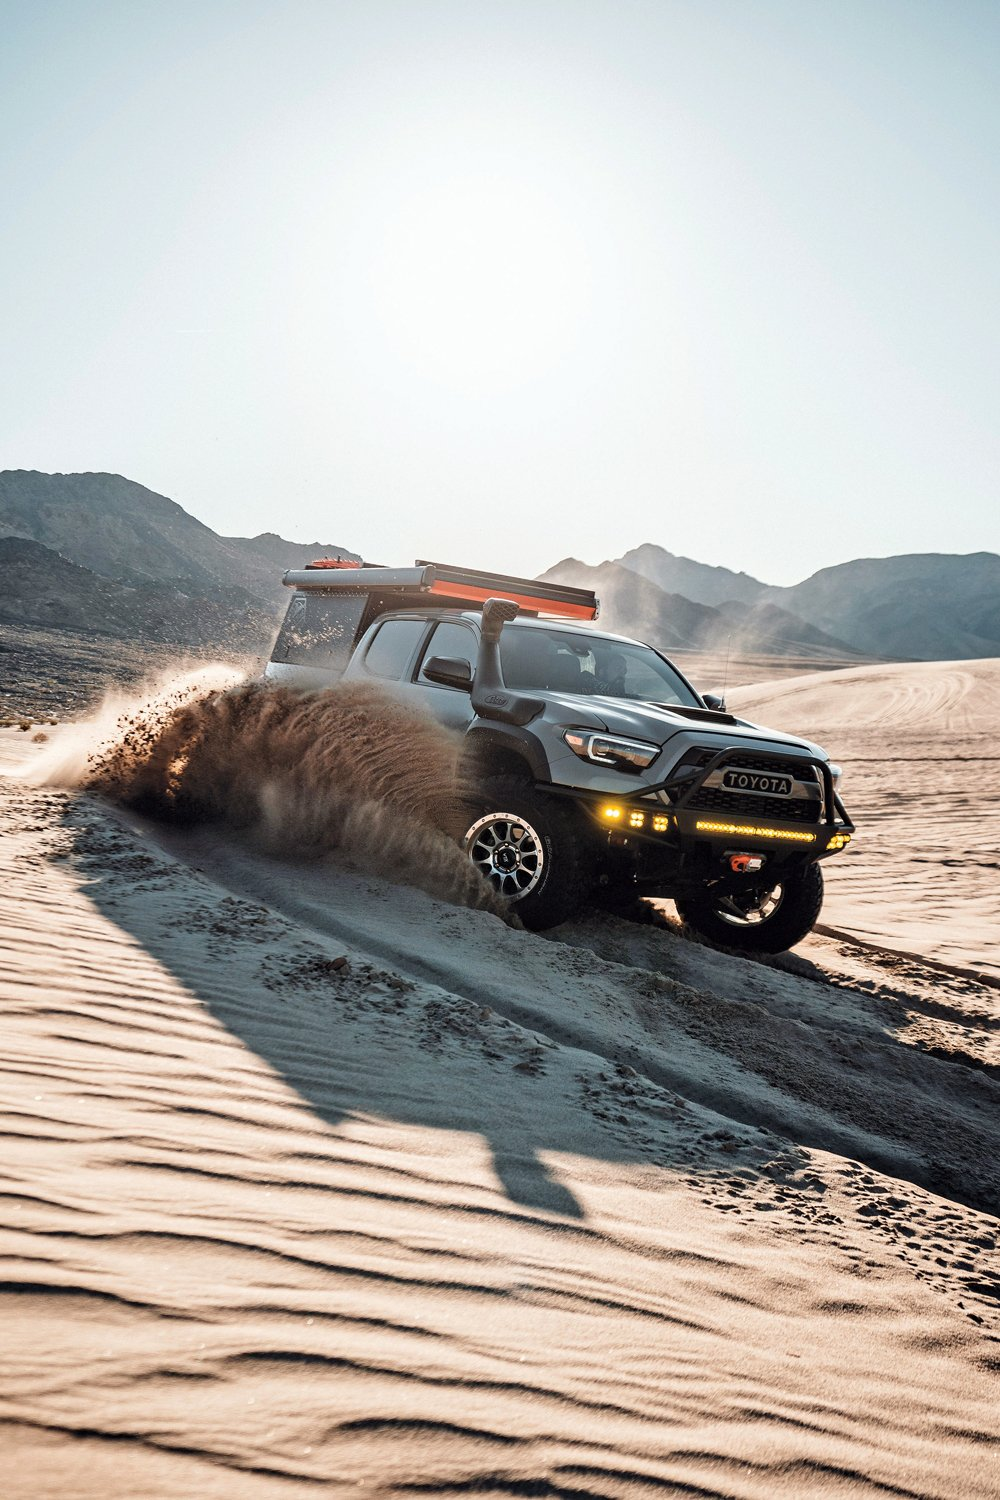 Toyota Tacoma TRD Off-Road driving in sand